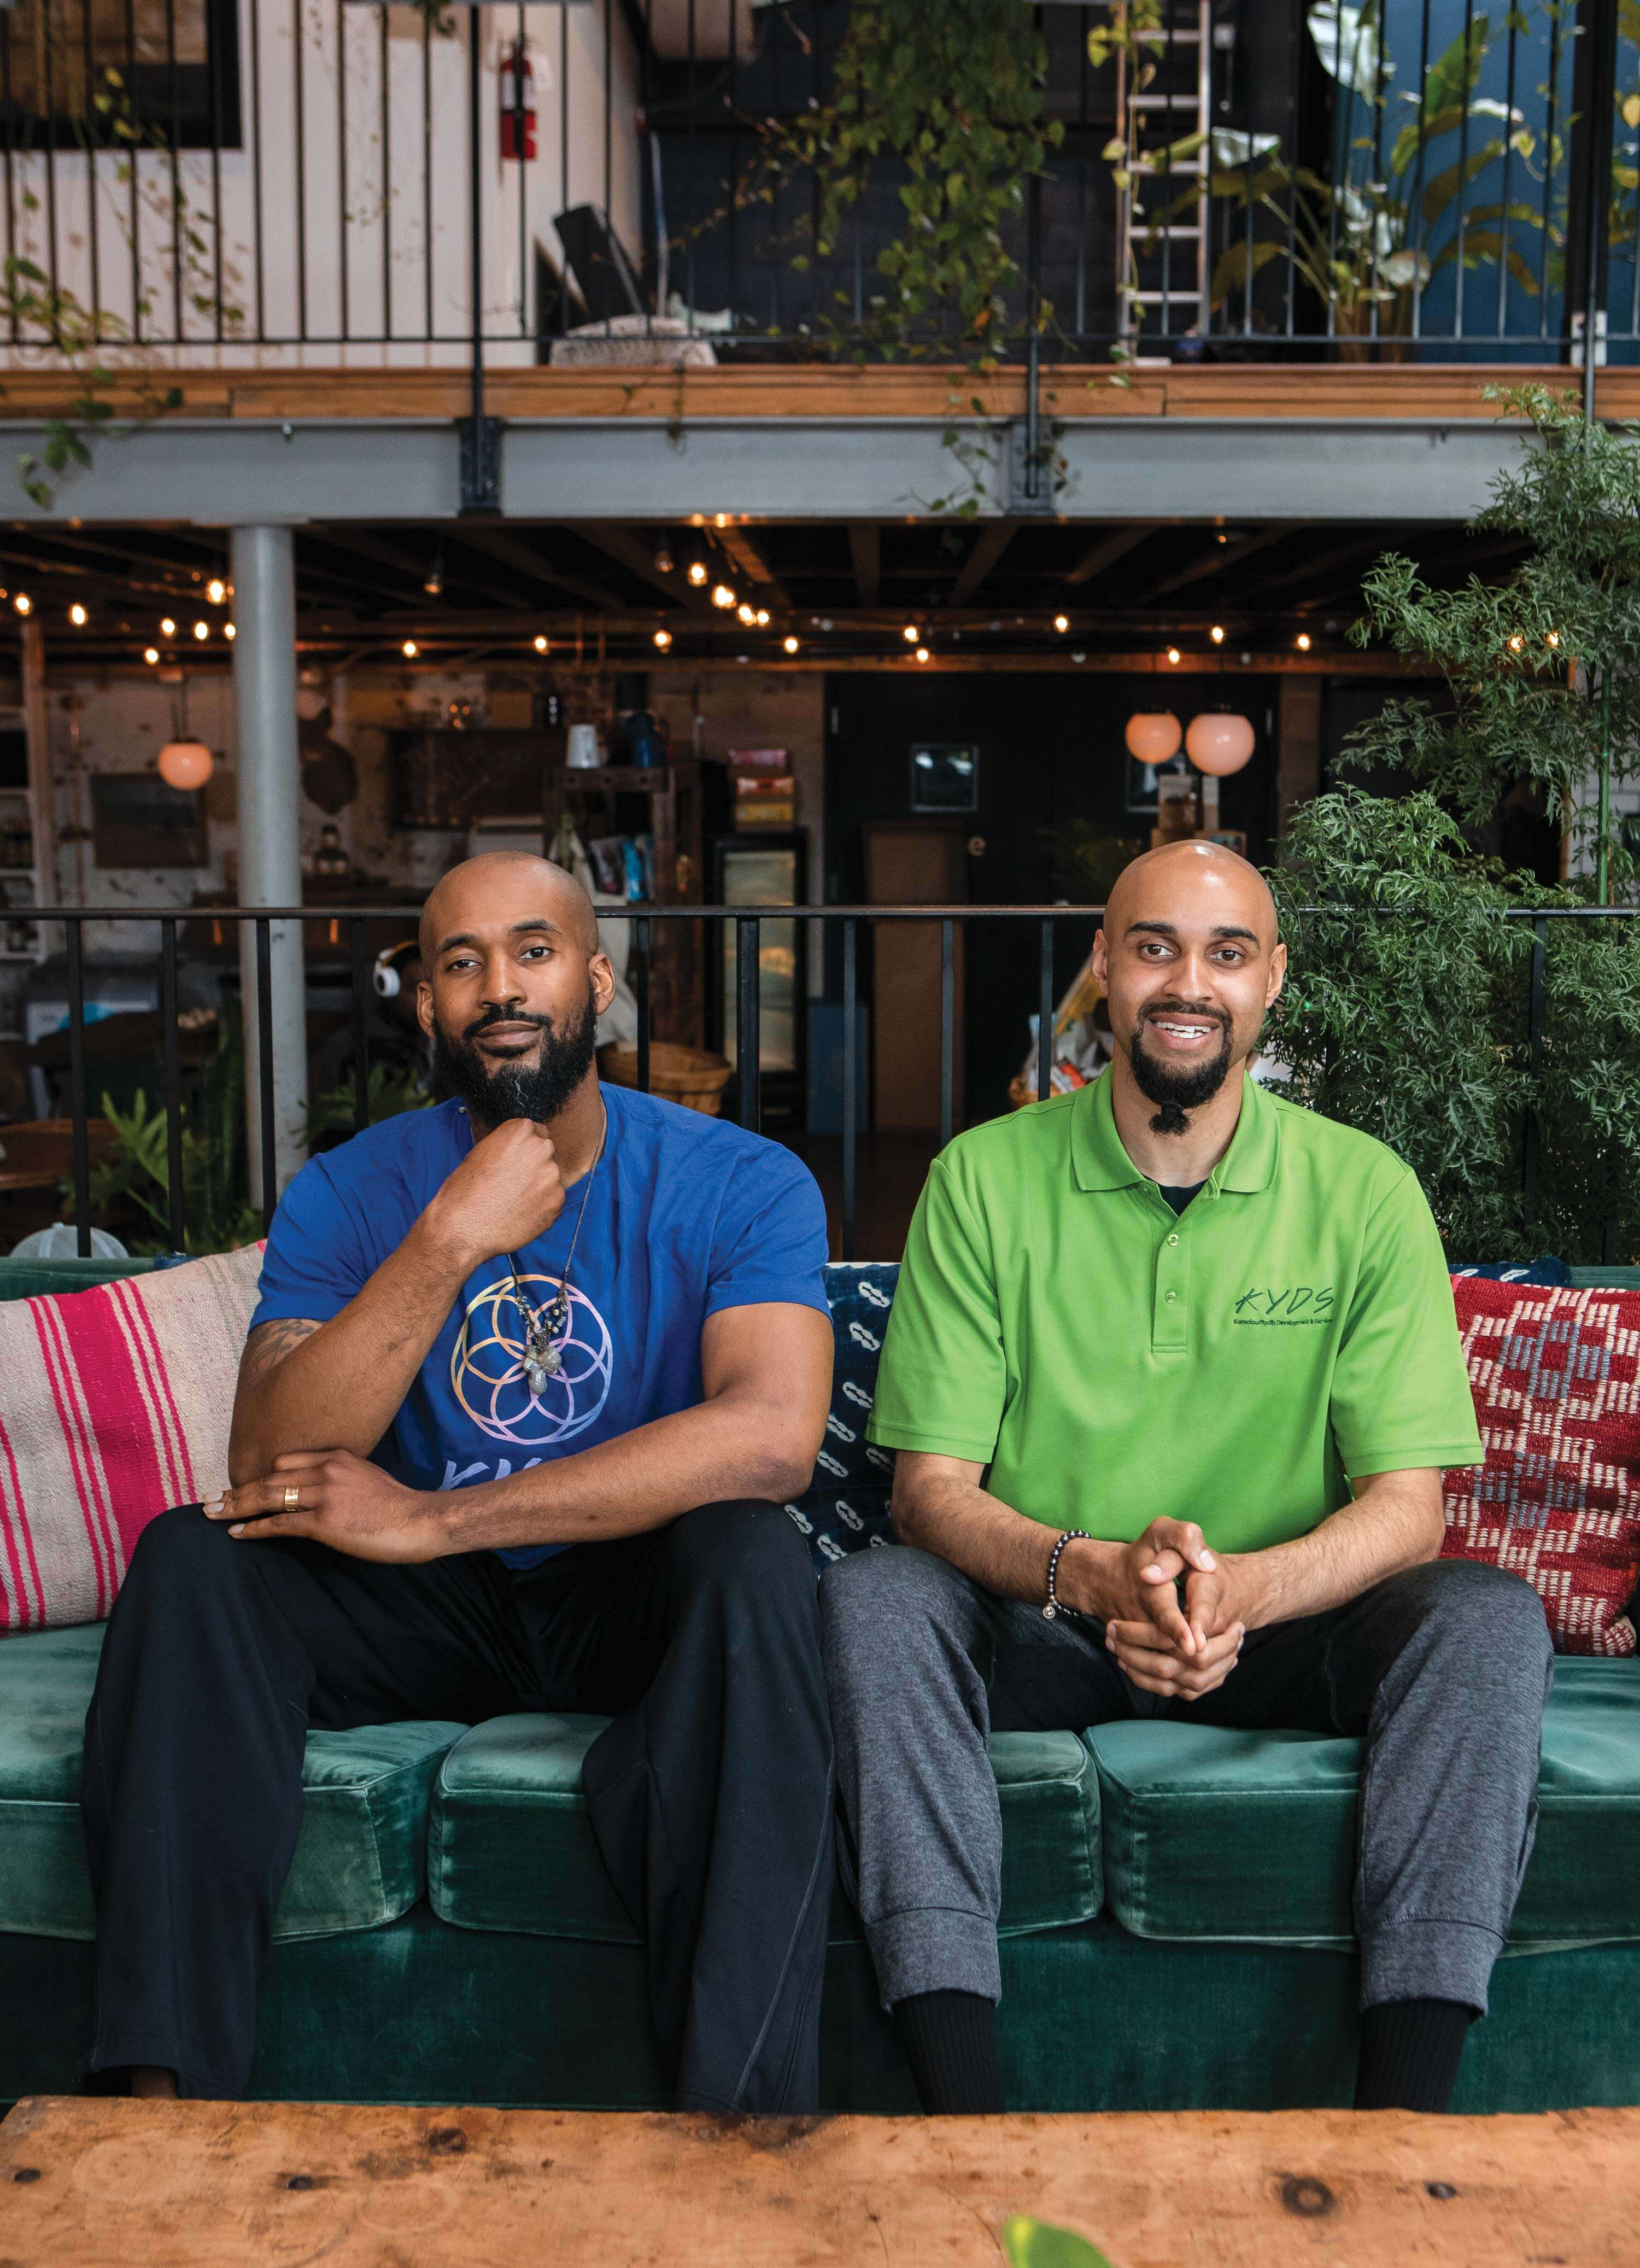 Salomon (left) and Mills pictured in Asbury Park's High Voltage Café, where they regularly meet for strategy sessions.